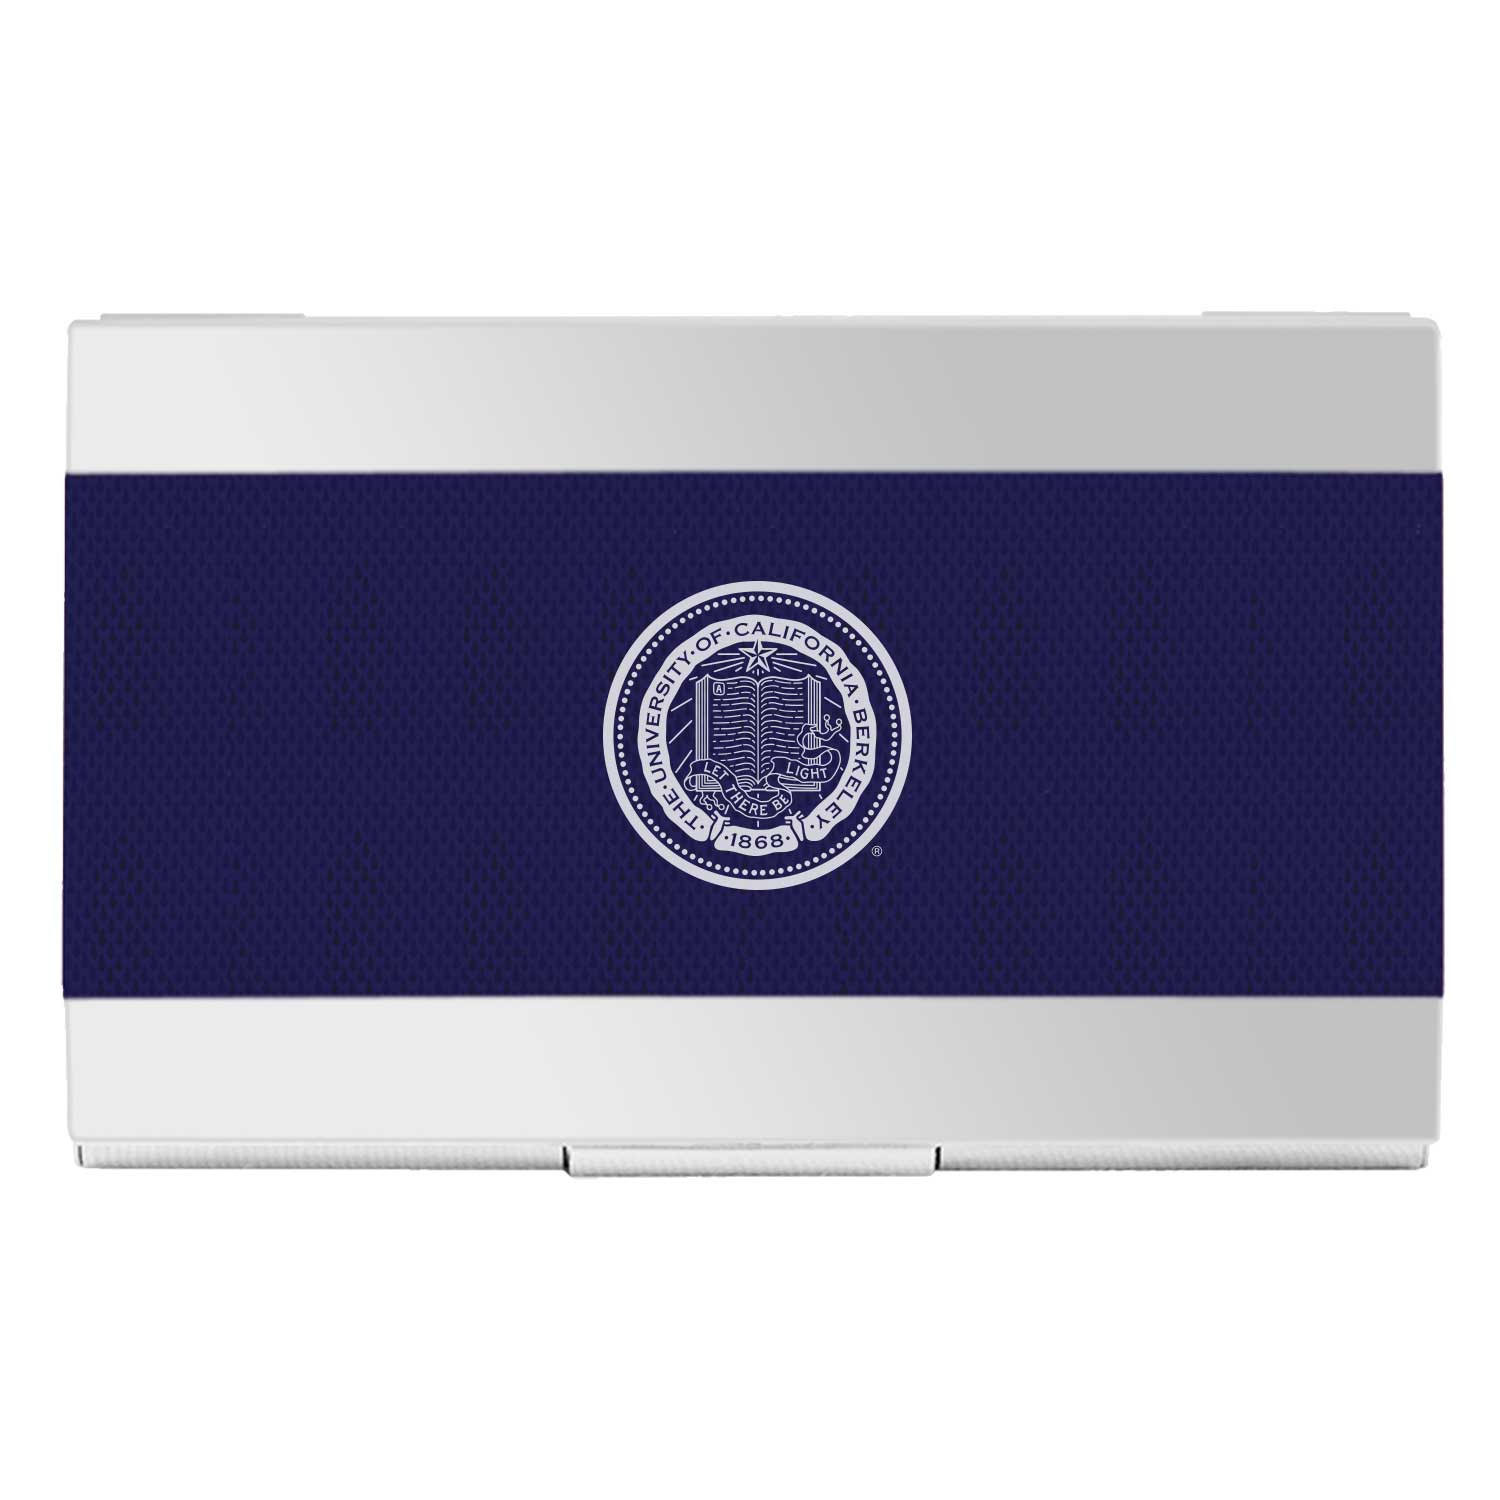 University of California Berkeley Carbon Fiber Business Card Holder